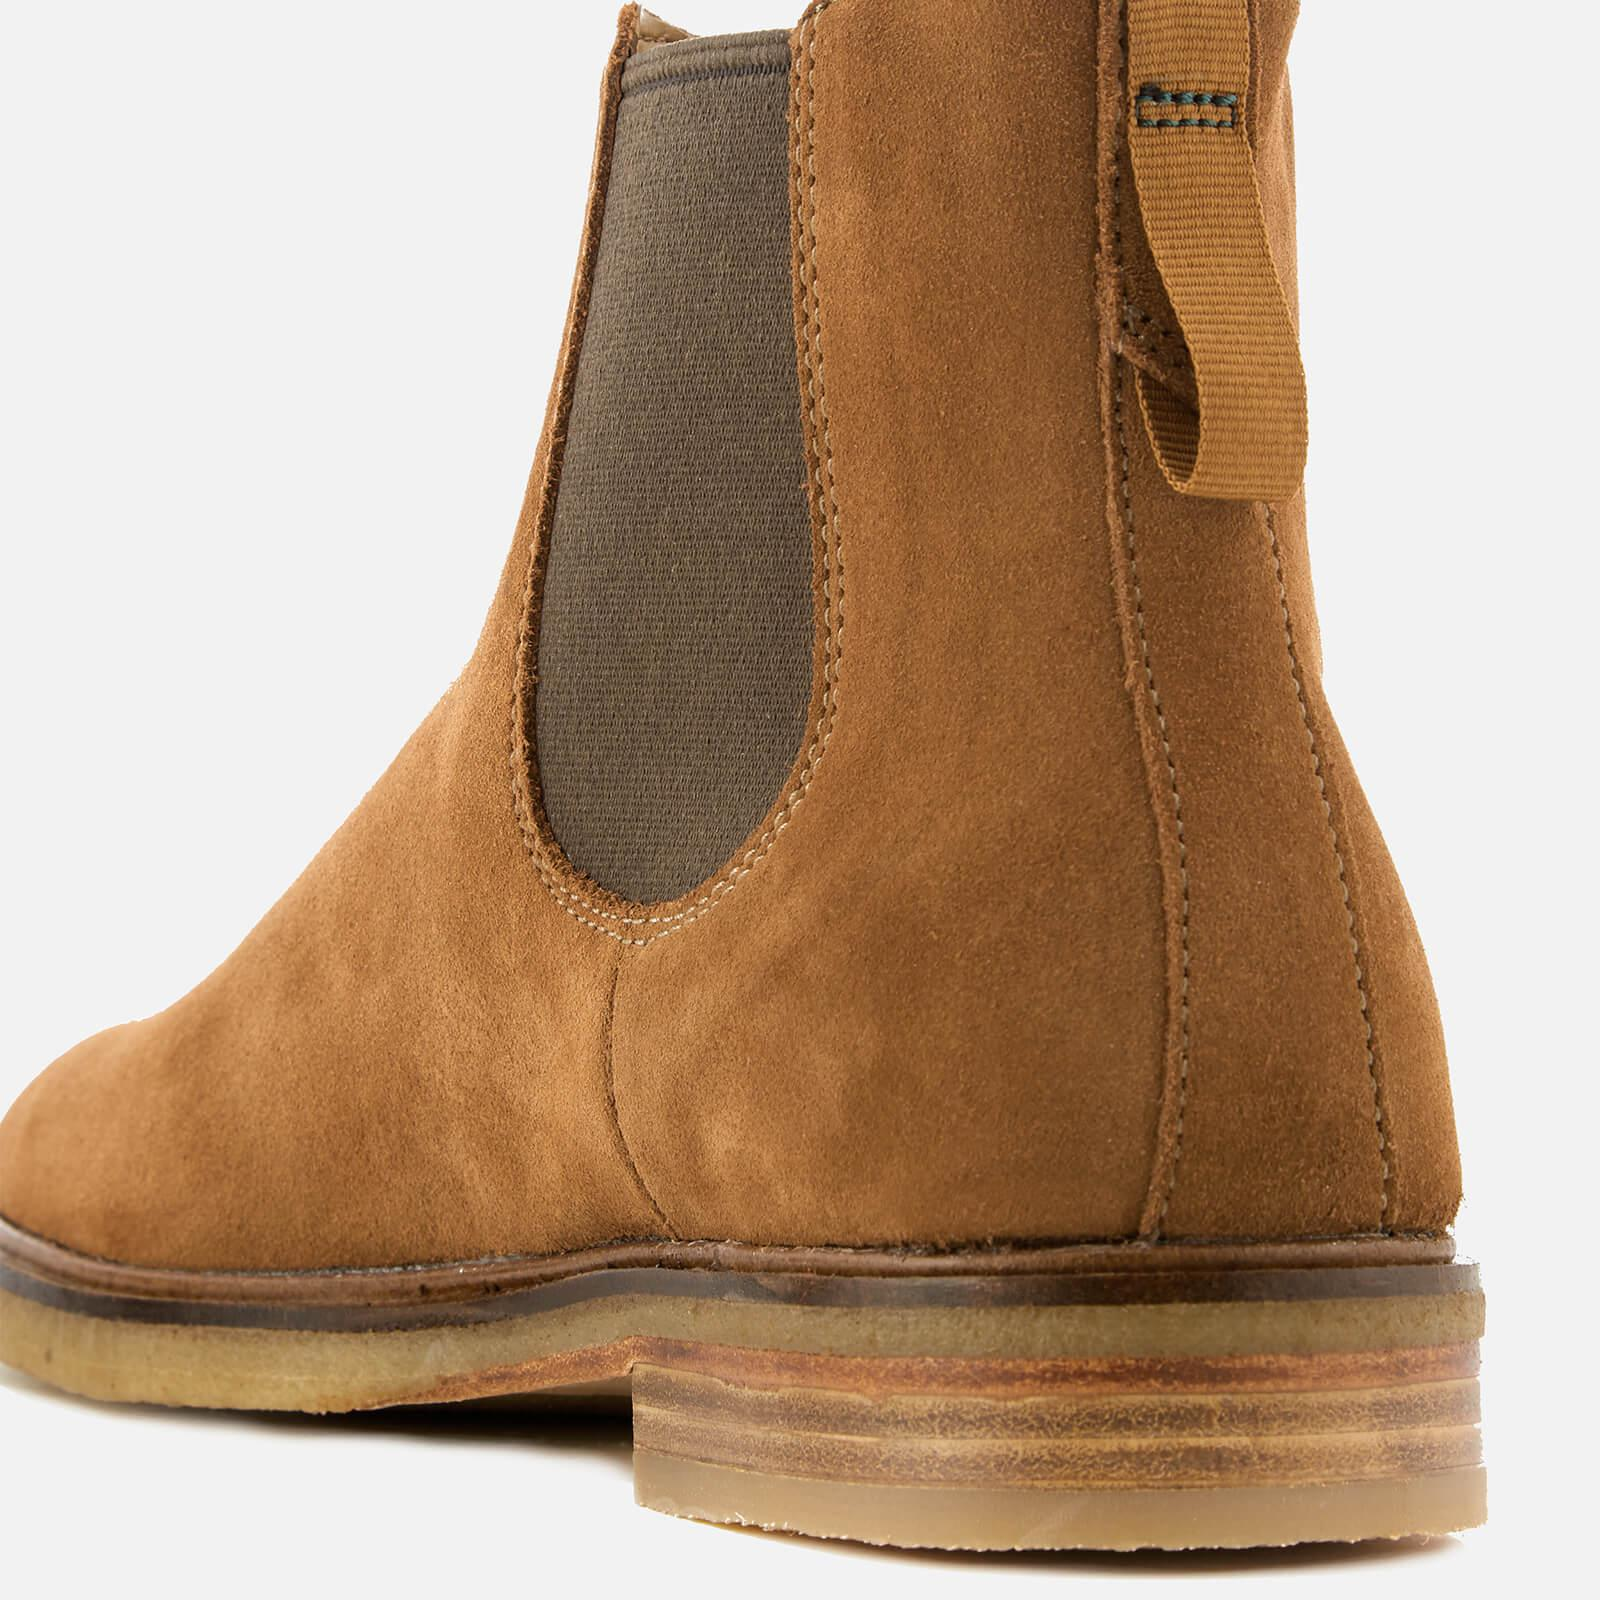 01061567f0f632 Lyst - Clarks Clarkdale Gobi Suede Chelsea Boots in Brown for Men